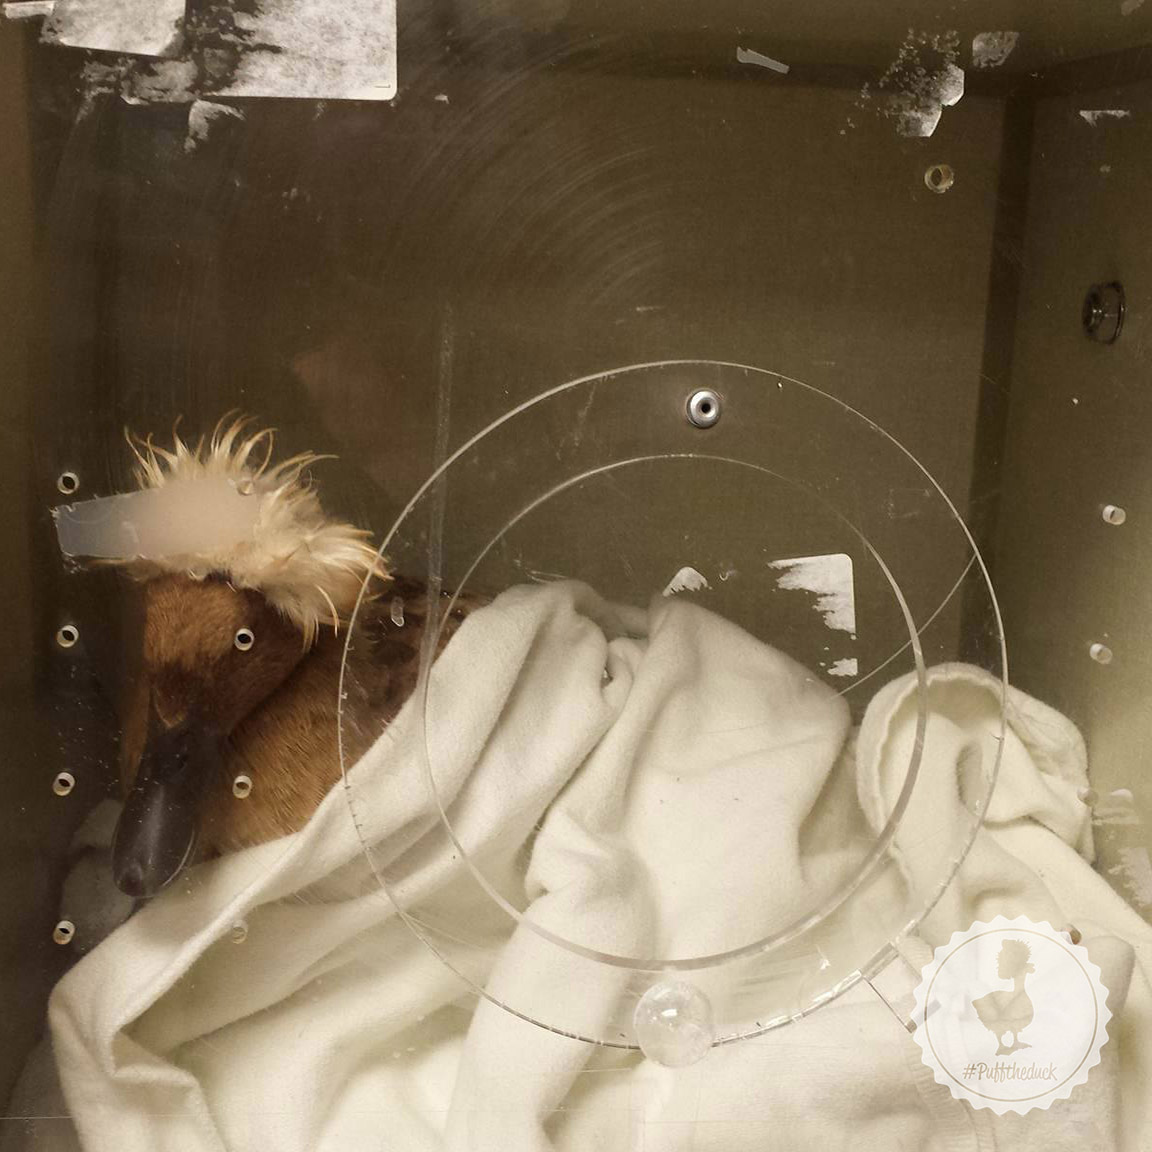 Puff's Recovery in the incubator